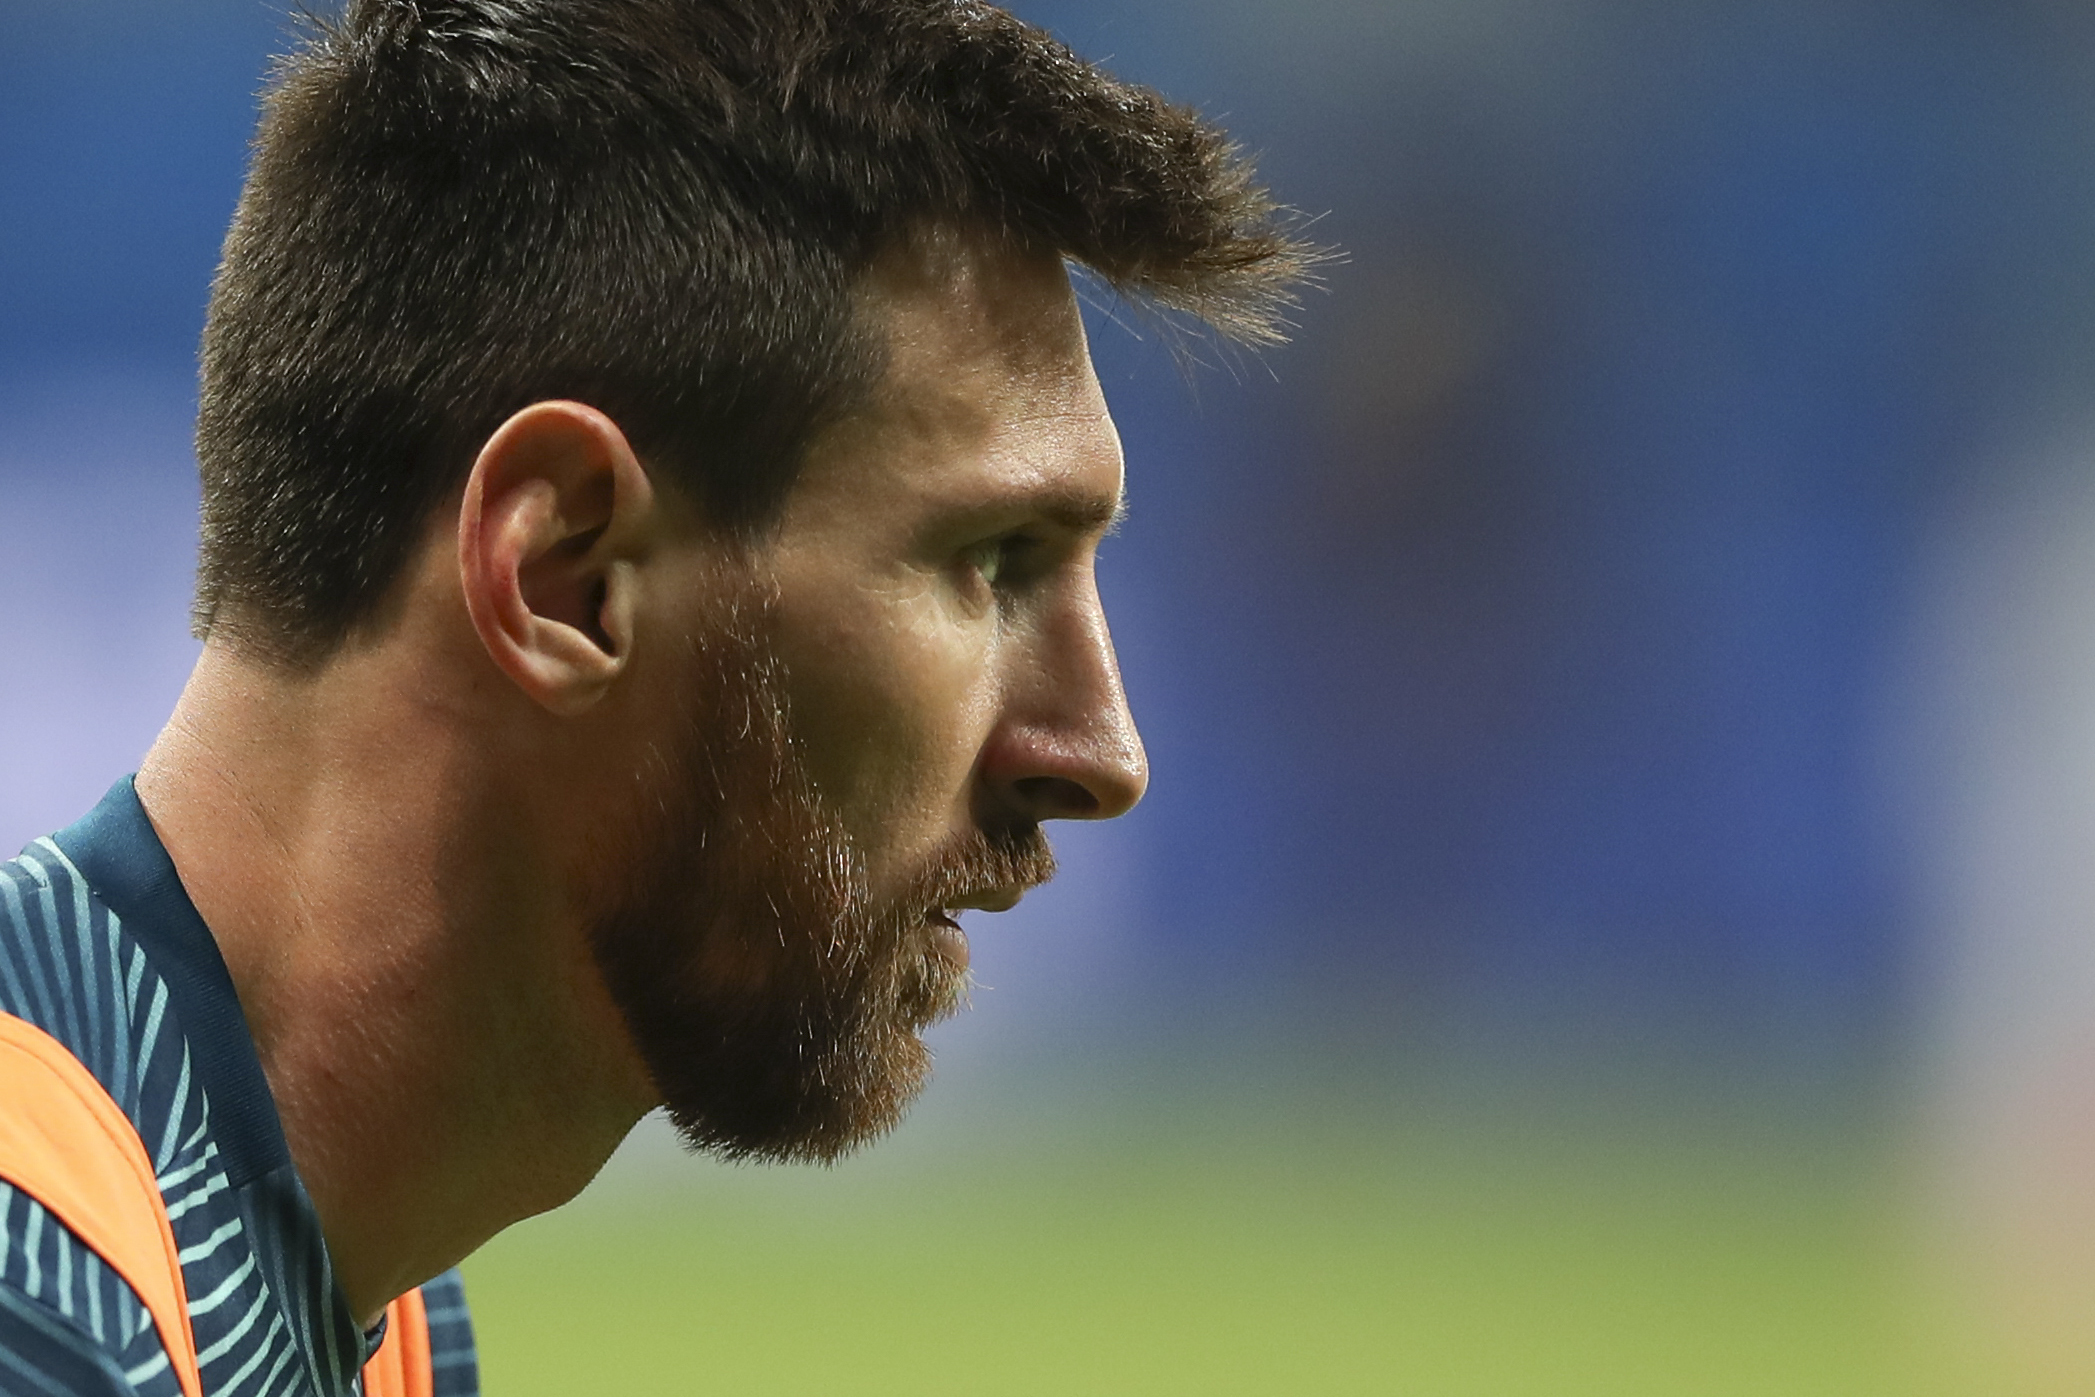 Messi produces magic on demand, all with an understated, consummate ease